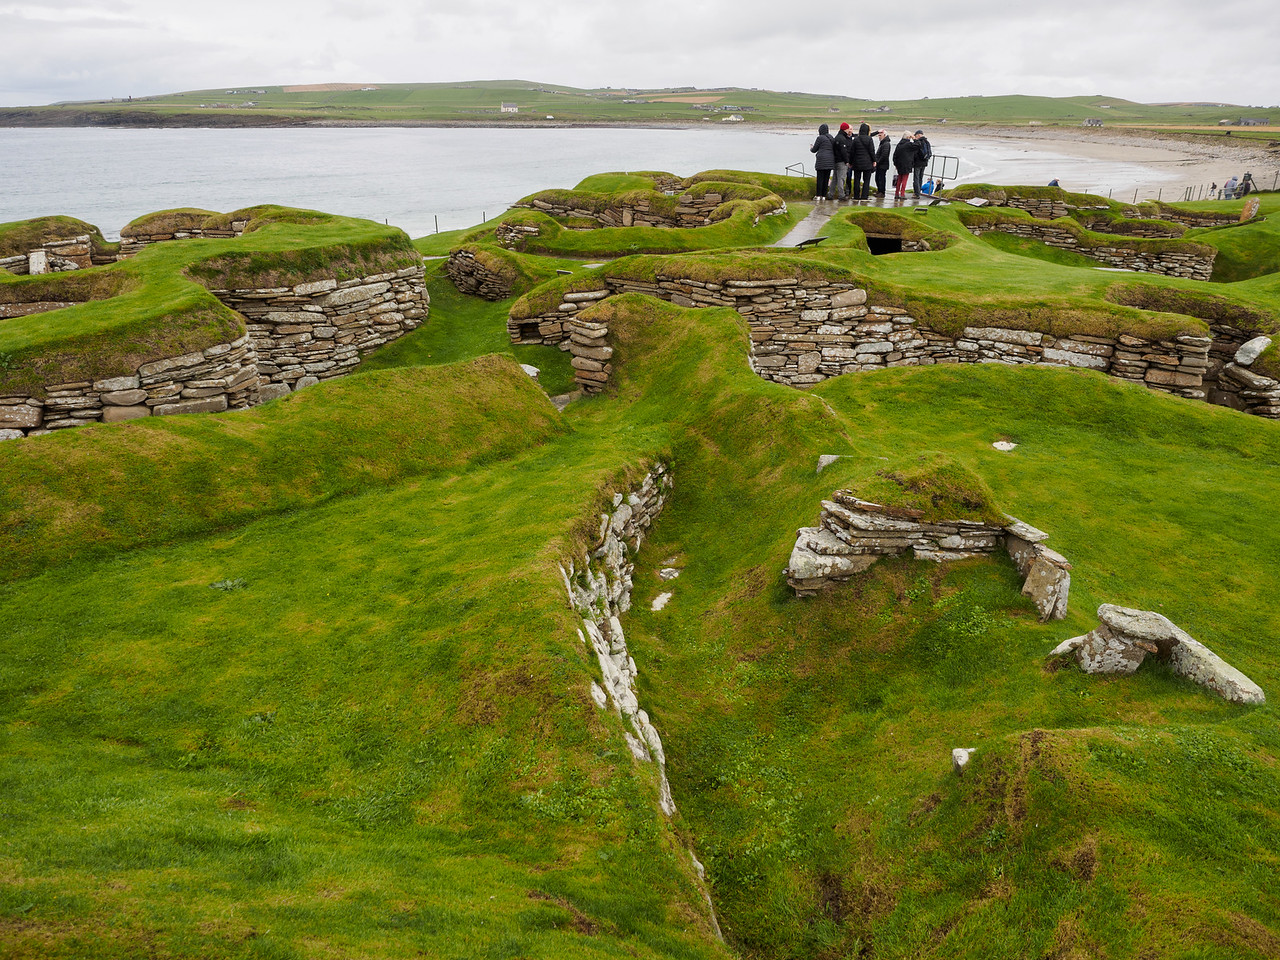 The very famous Neolithic village at Skara Brae, uncovered from the sand dunes by a storm in 1850.